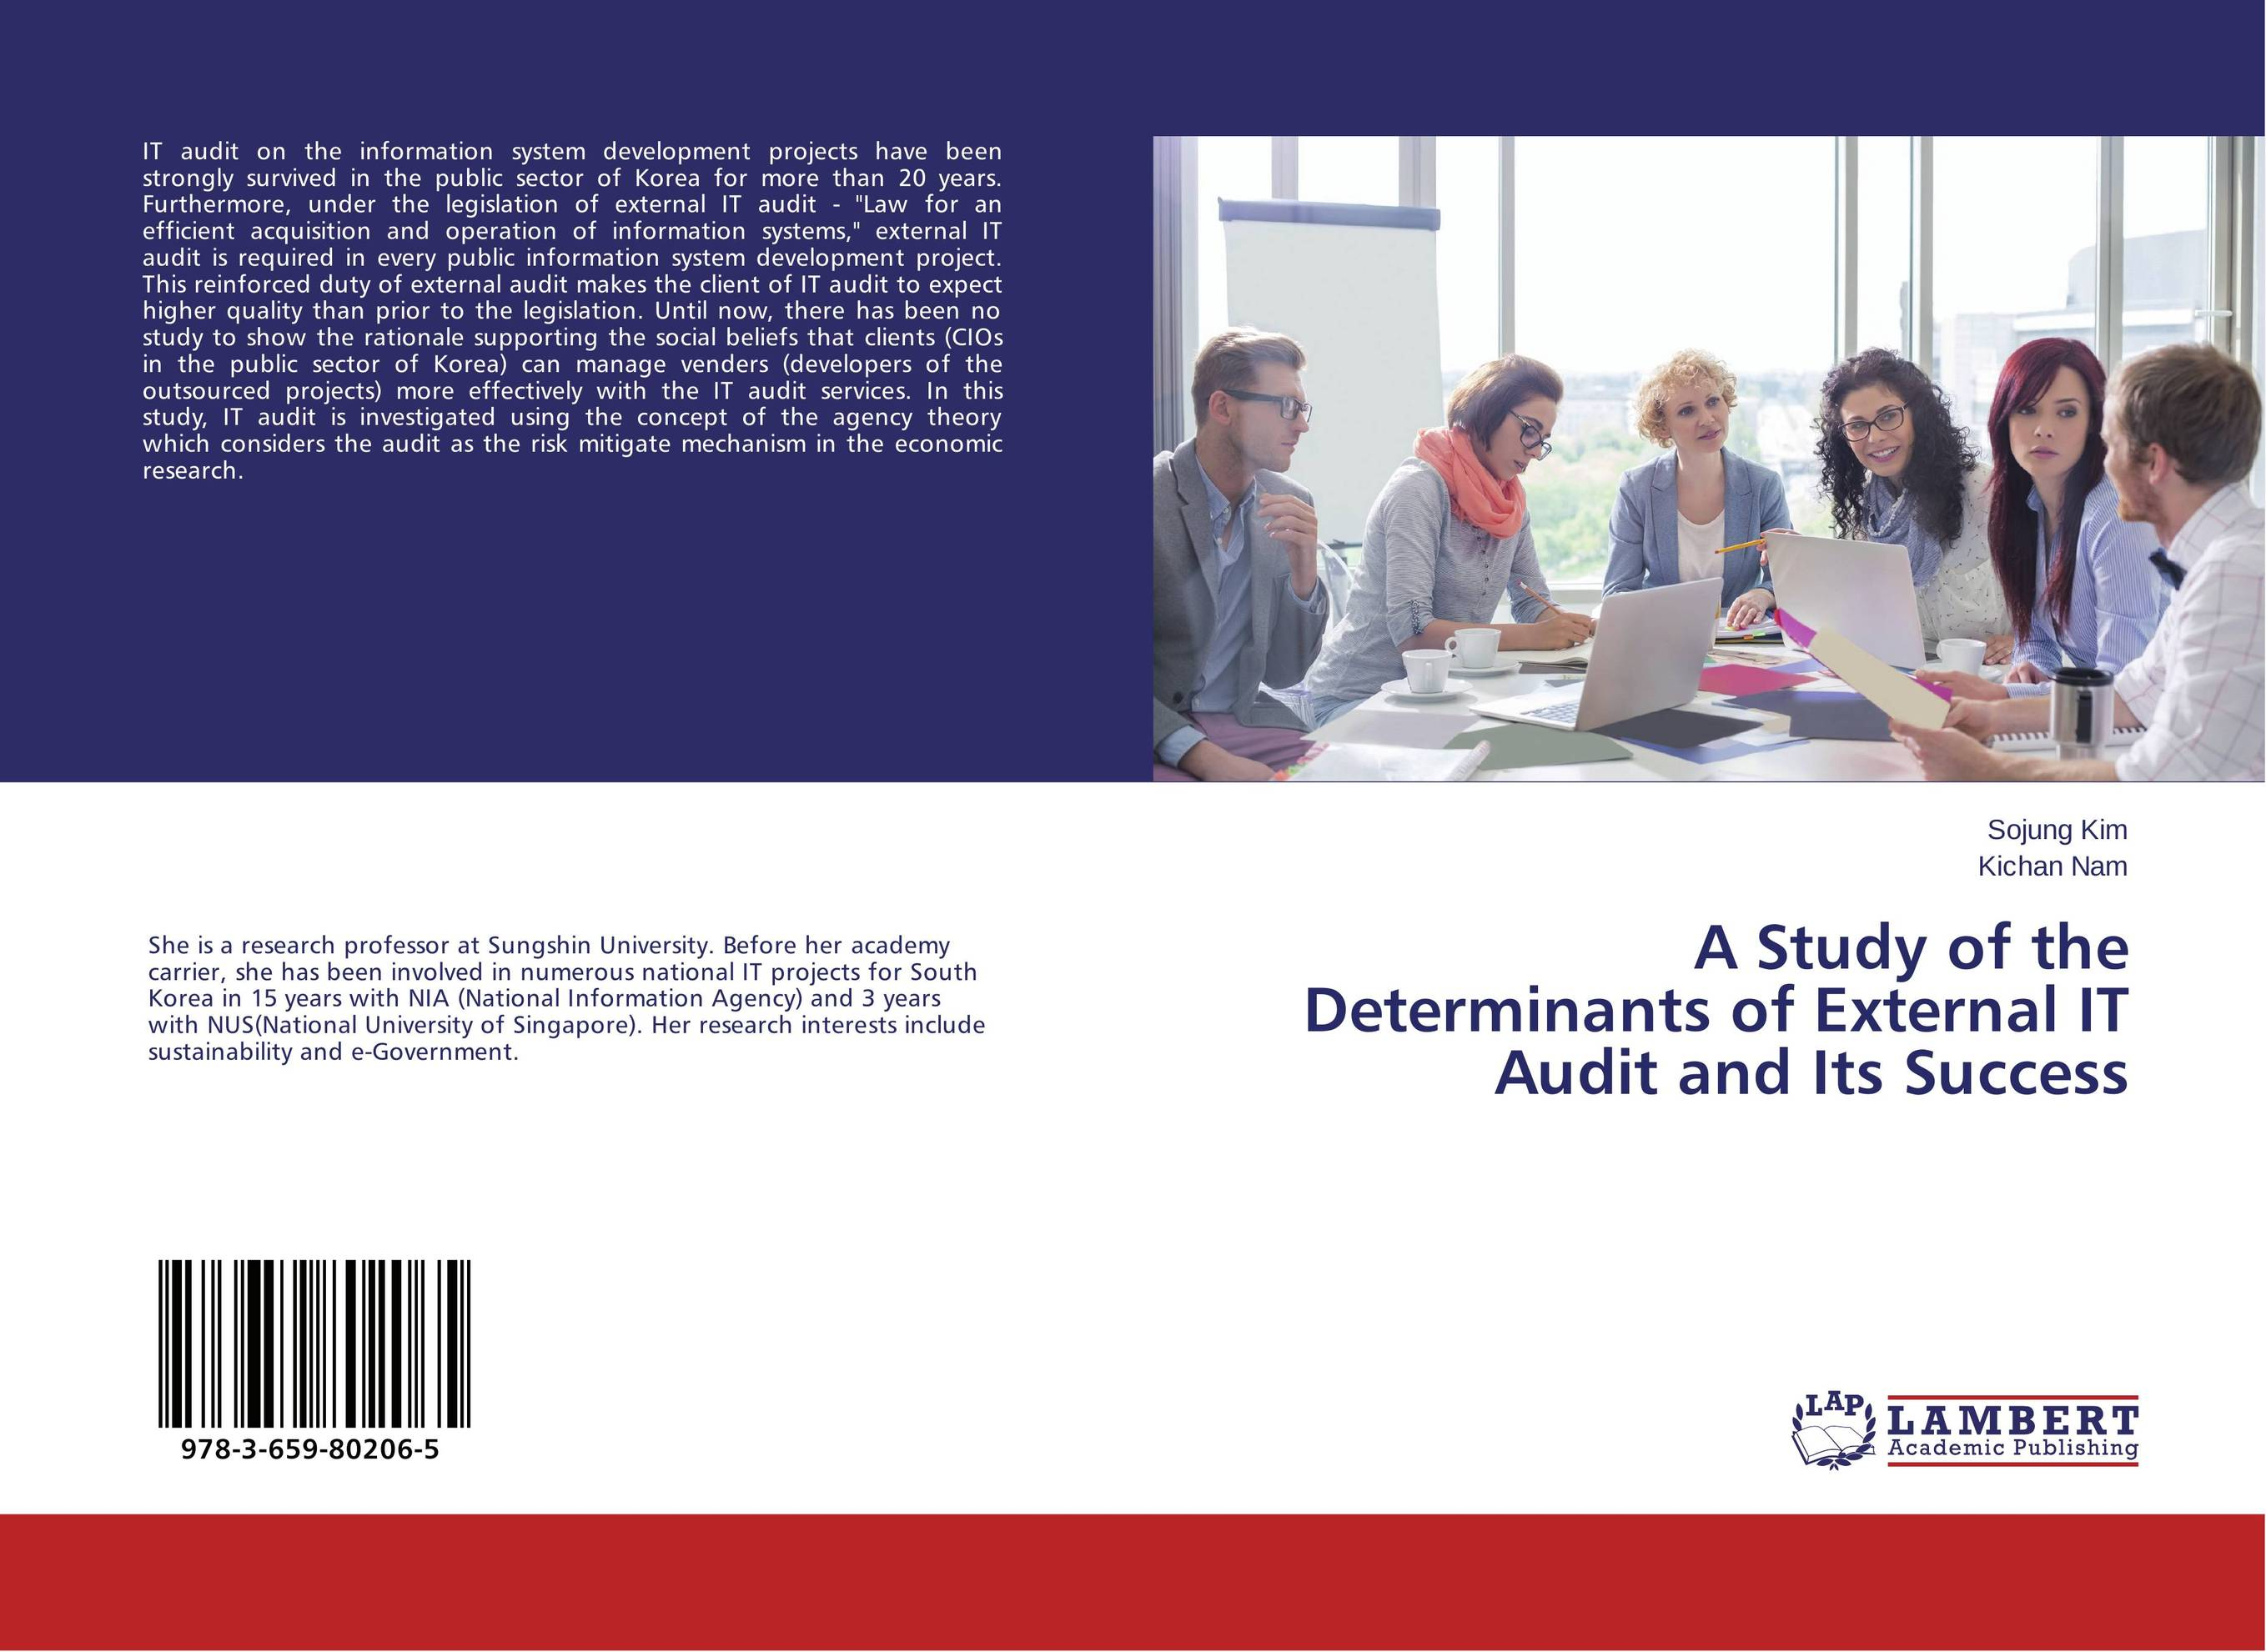 A Study of the Determinants of External IT Audit and Its Success a study of the religio political thought of abdurrahman wahid